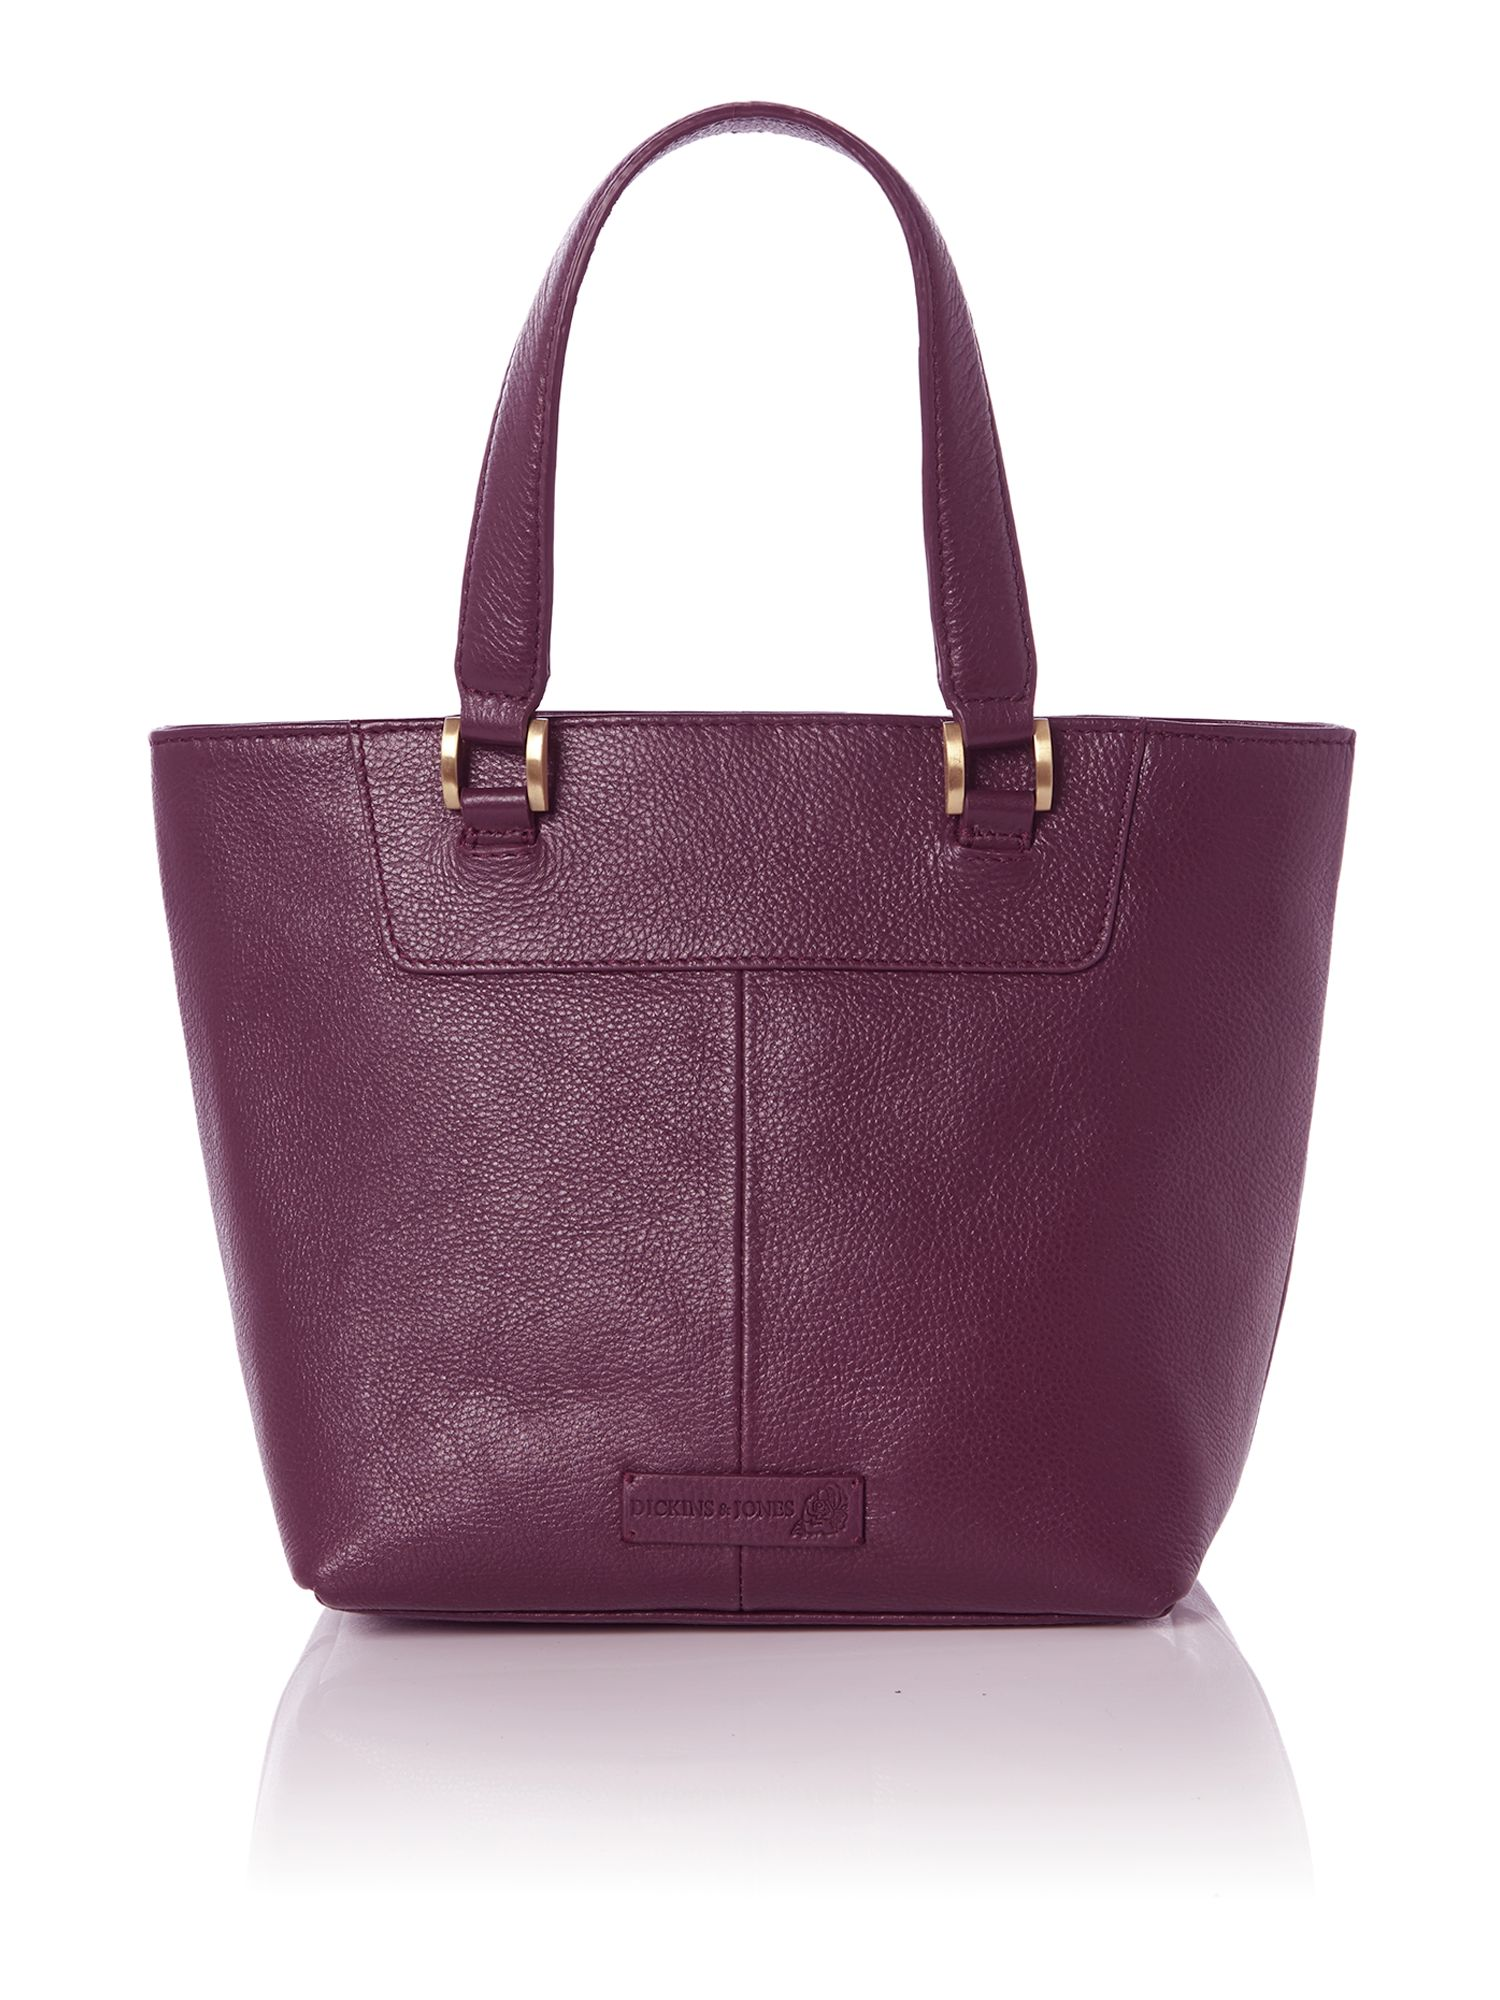 Mini boxy winged tote handbag